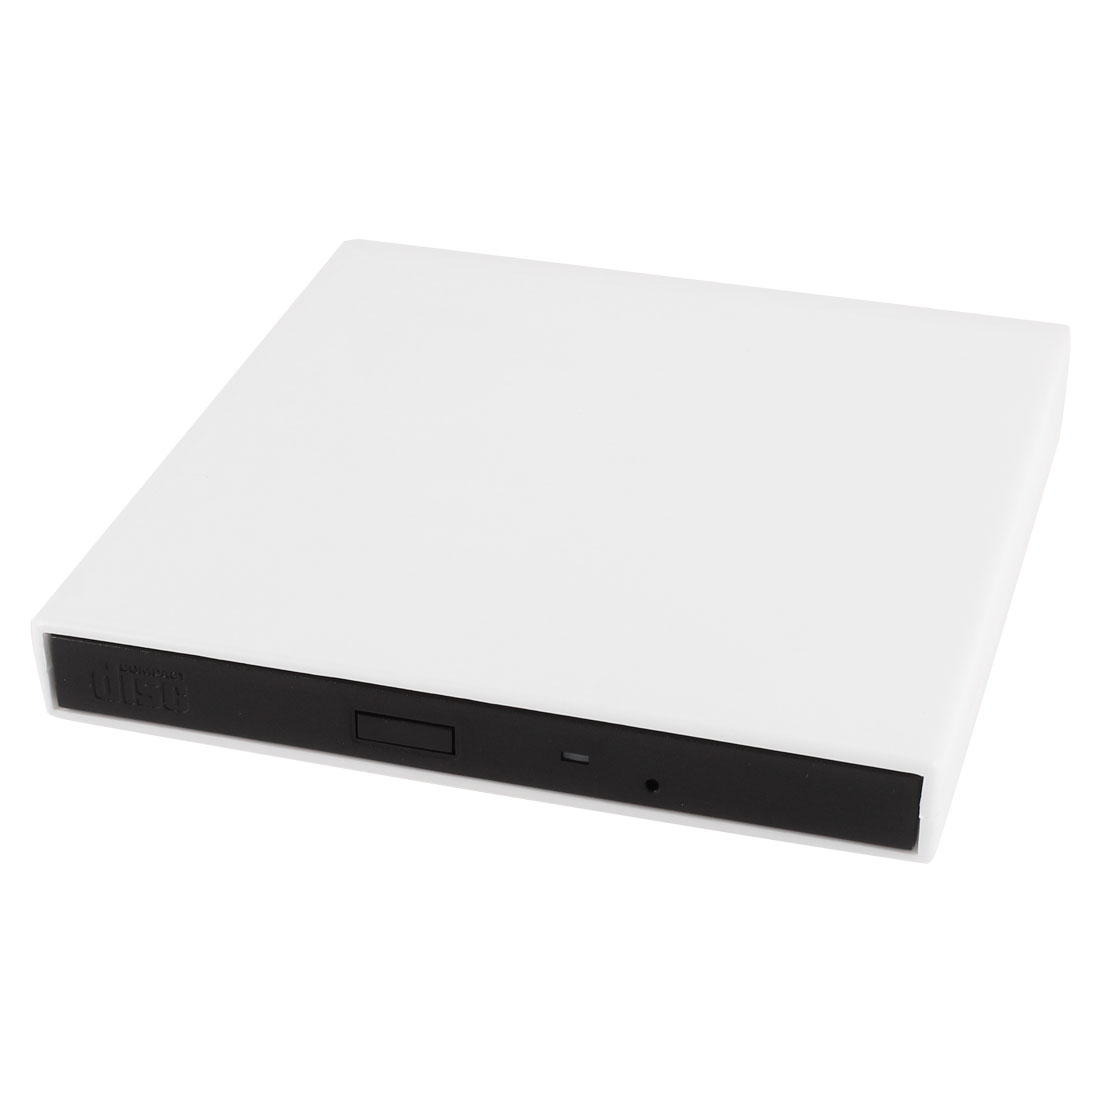 White Super Slim USB 2.0 24x External CD CD-ROM Disc Drive for Desktop Laptop